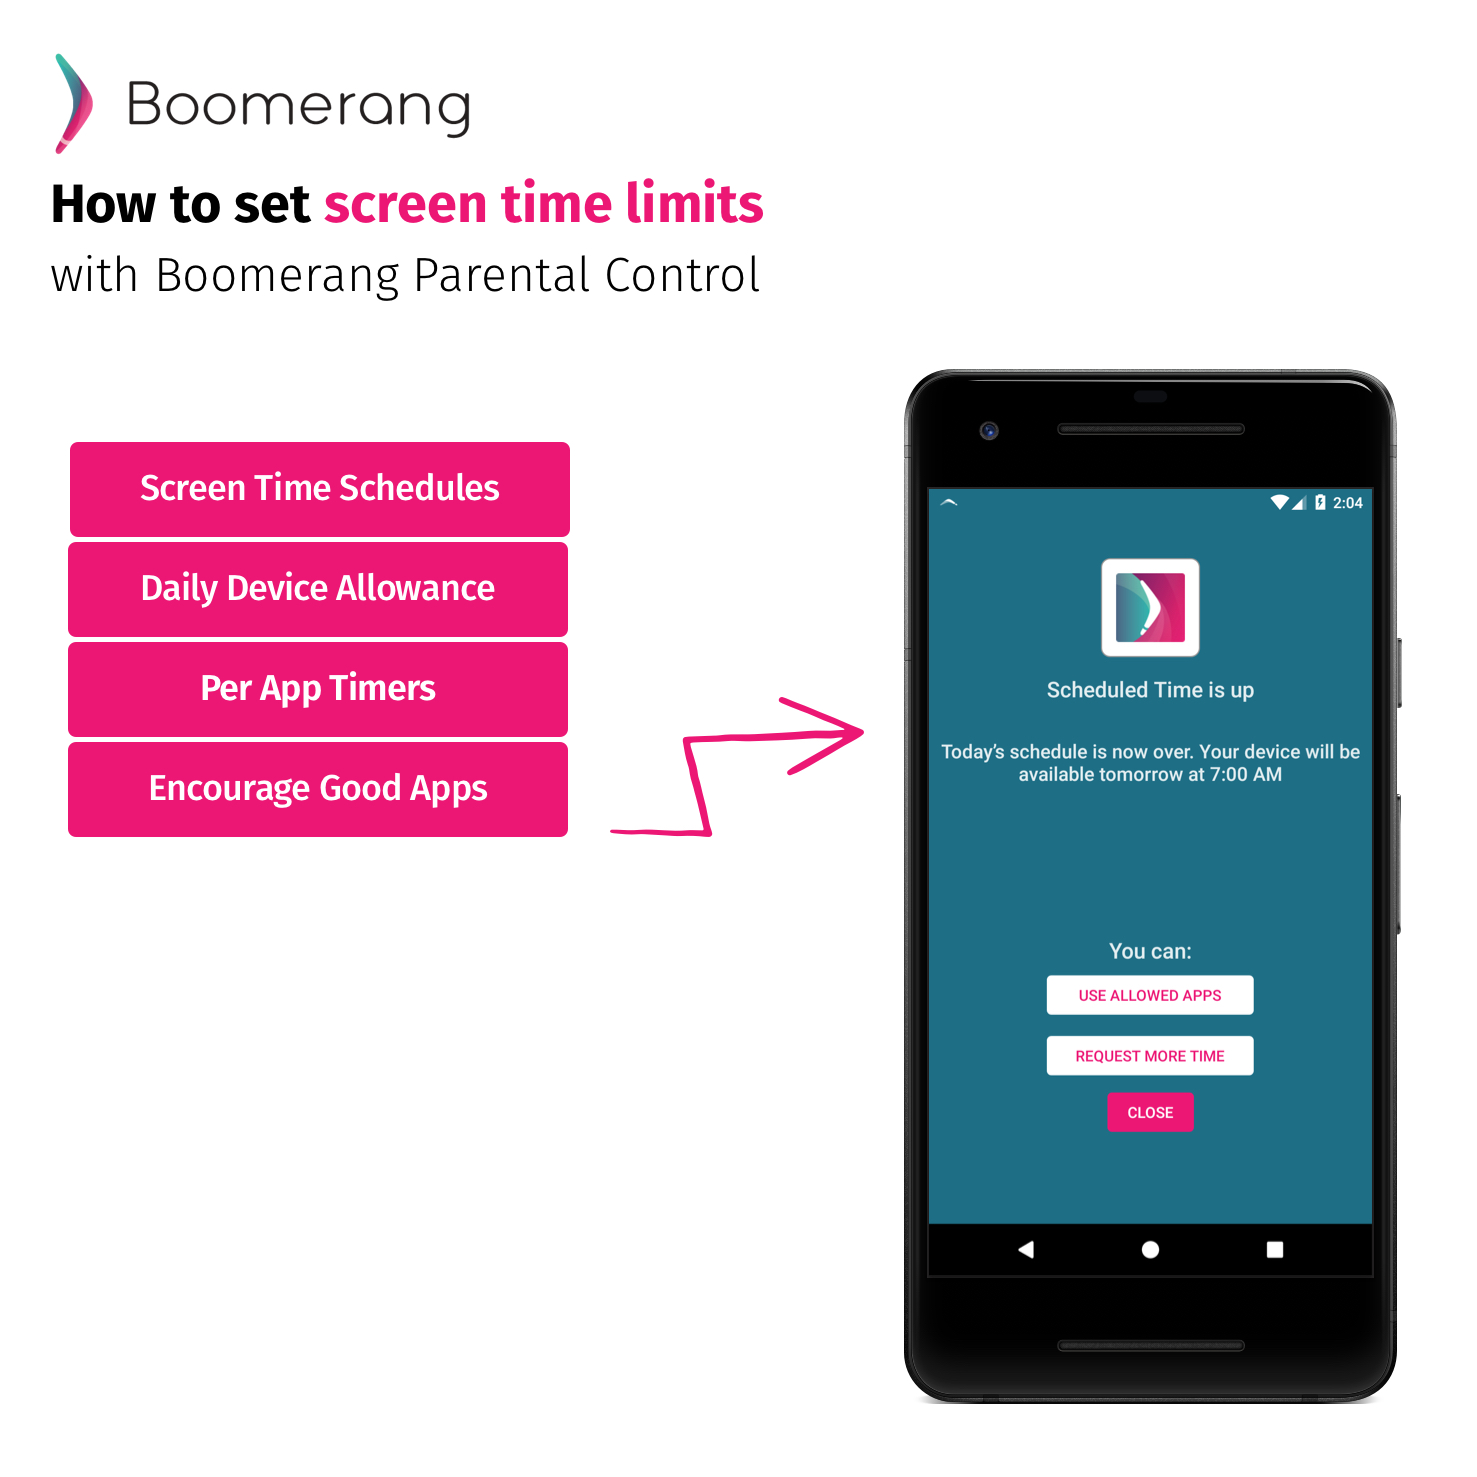 How to set screen time limits with Boomerang Parental Control